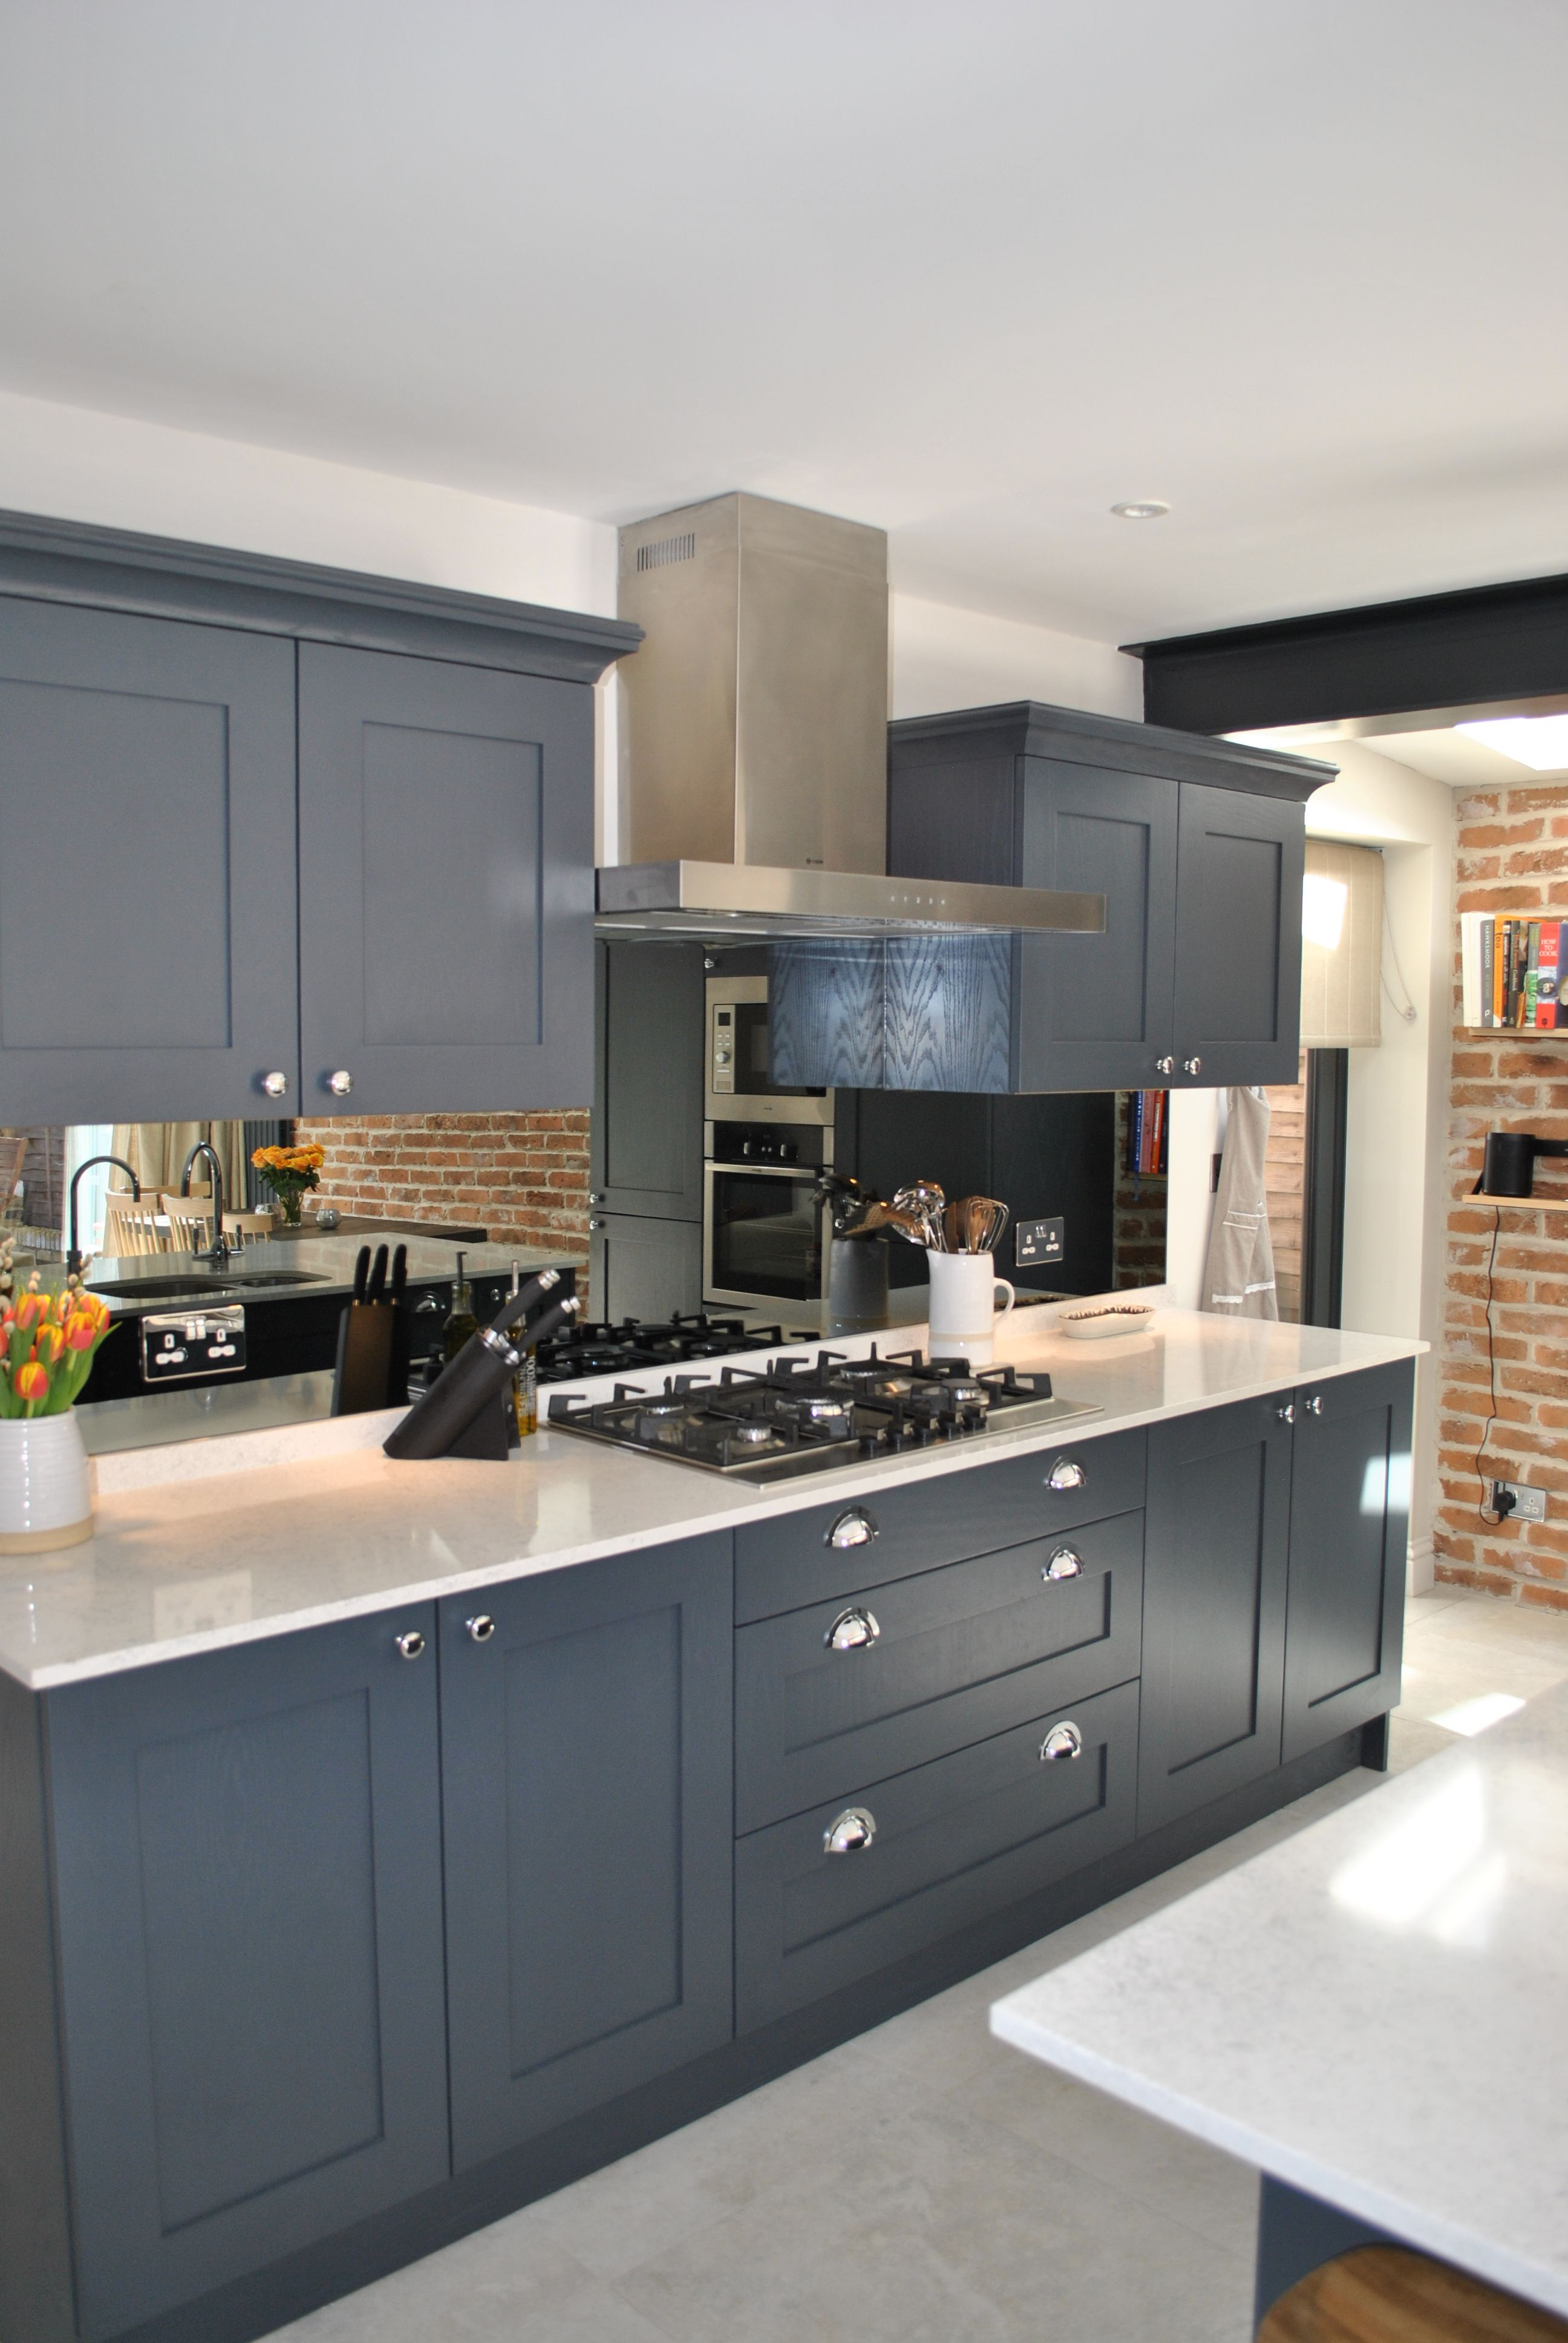 Modern Shaker Kitchen In Dark Slate Blue Looks Stunning Against